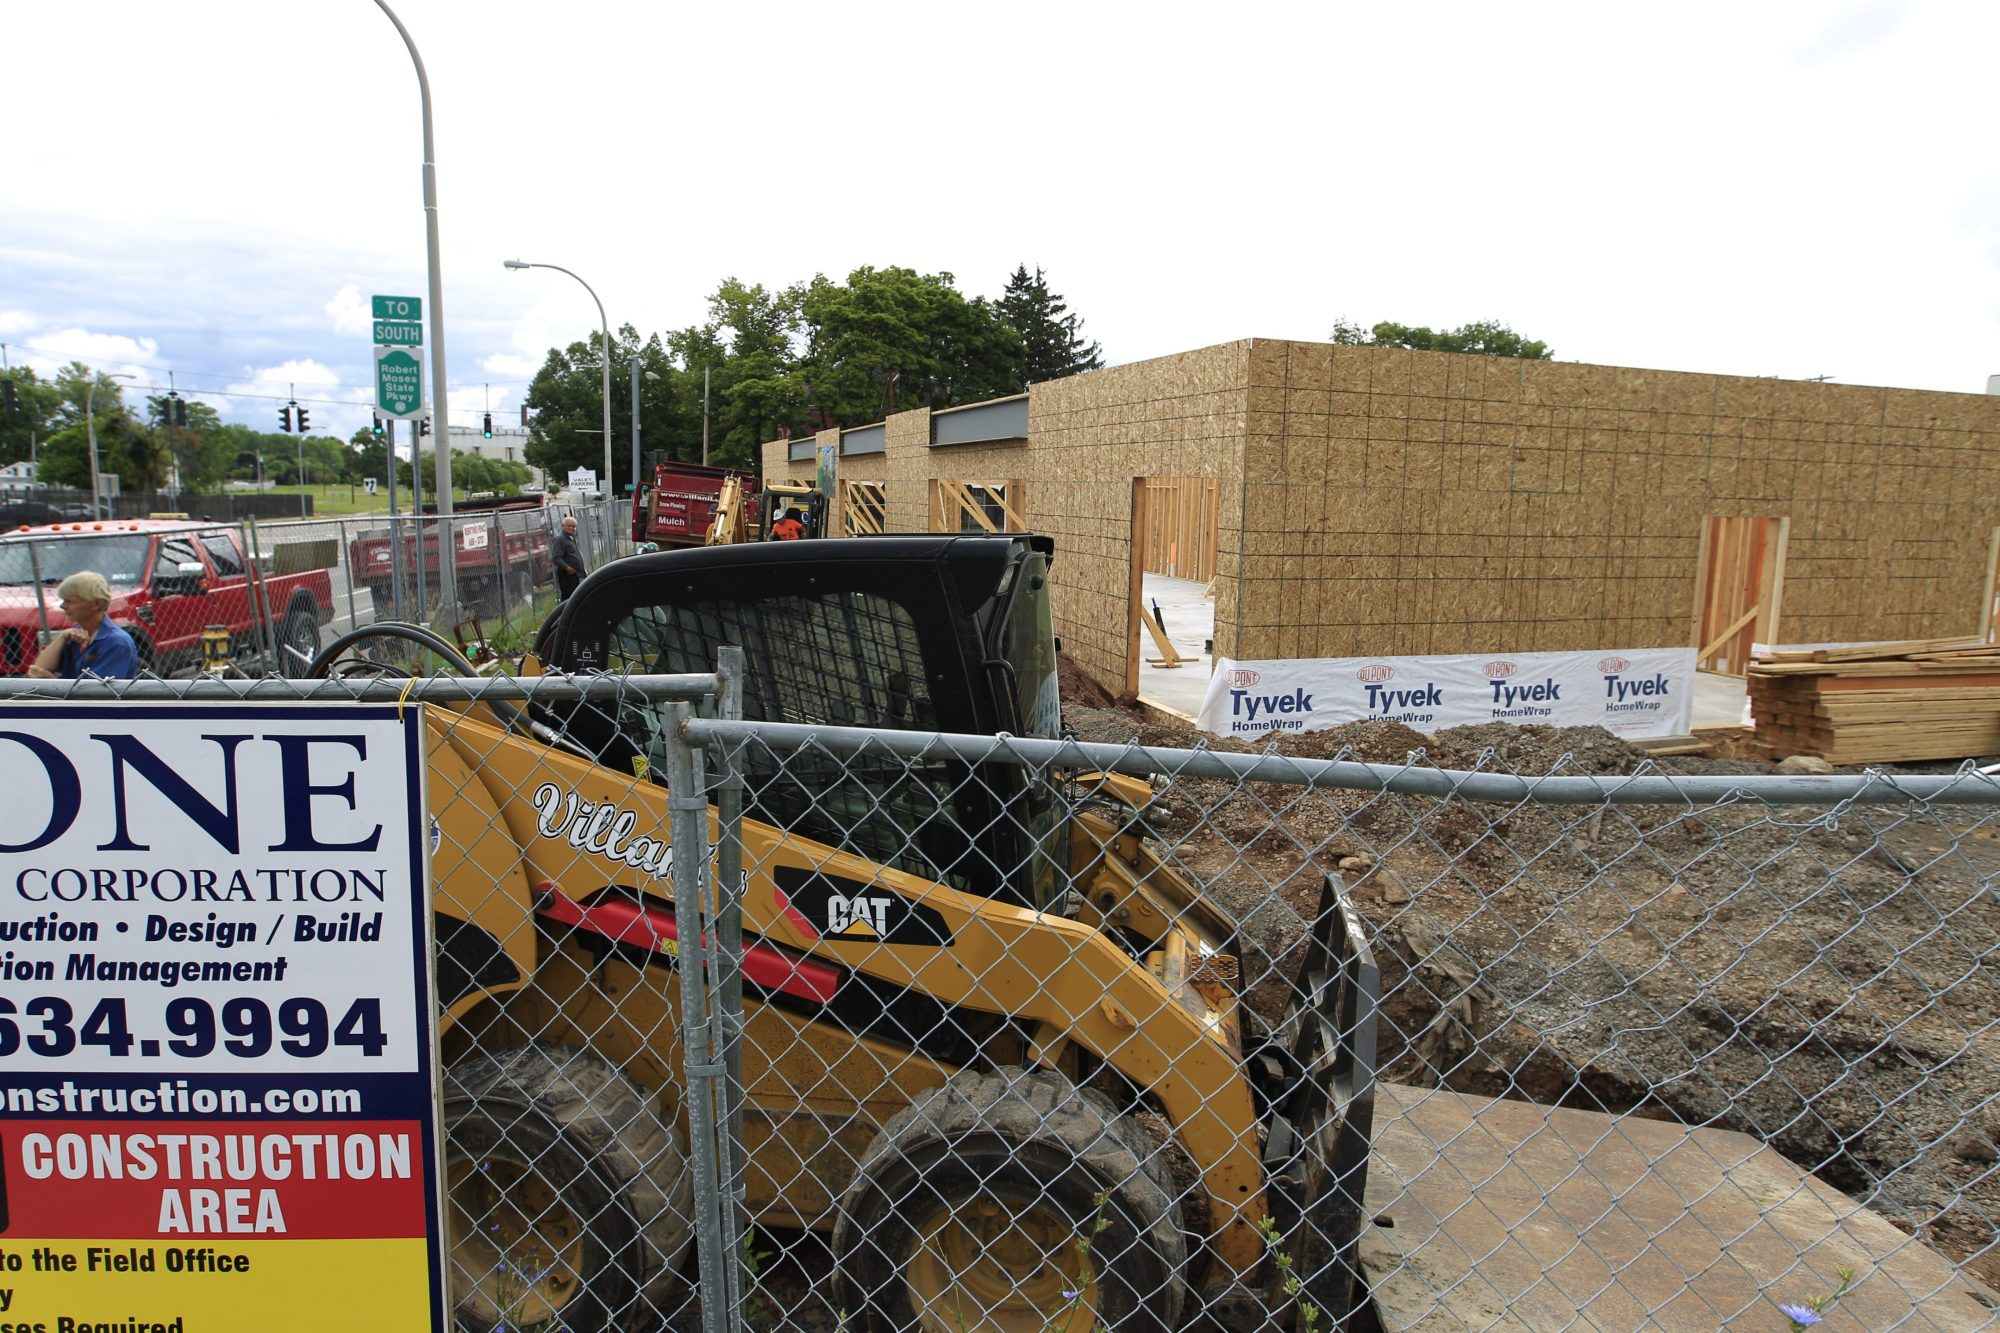 The construction of  Wingate by Wyndham hotel at 333 Rainbow Blvd. on Tuesday, July 29, 2014. The new hotel will be nearby. (John Hickey/Buffalo News file photo)